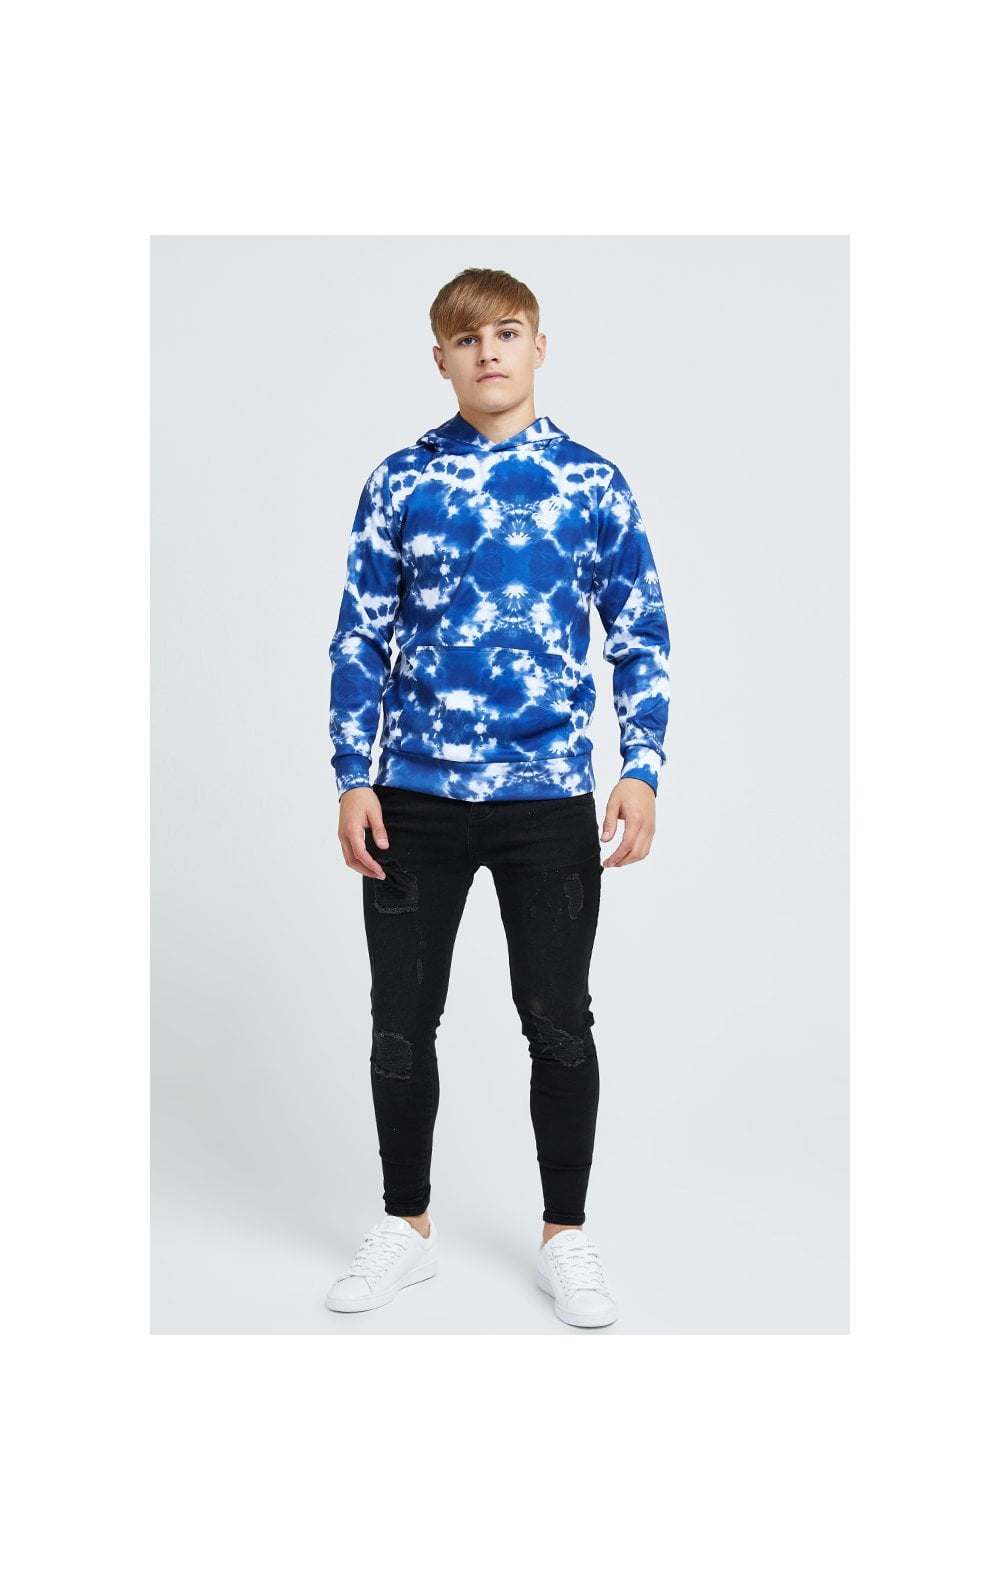 Load image into Gallery viewer, Illusive London Tie Dye Print Hoodie - Blue & White (2)